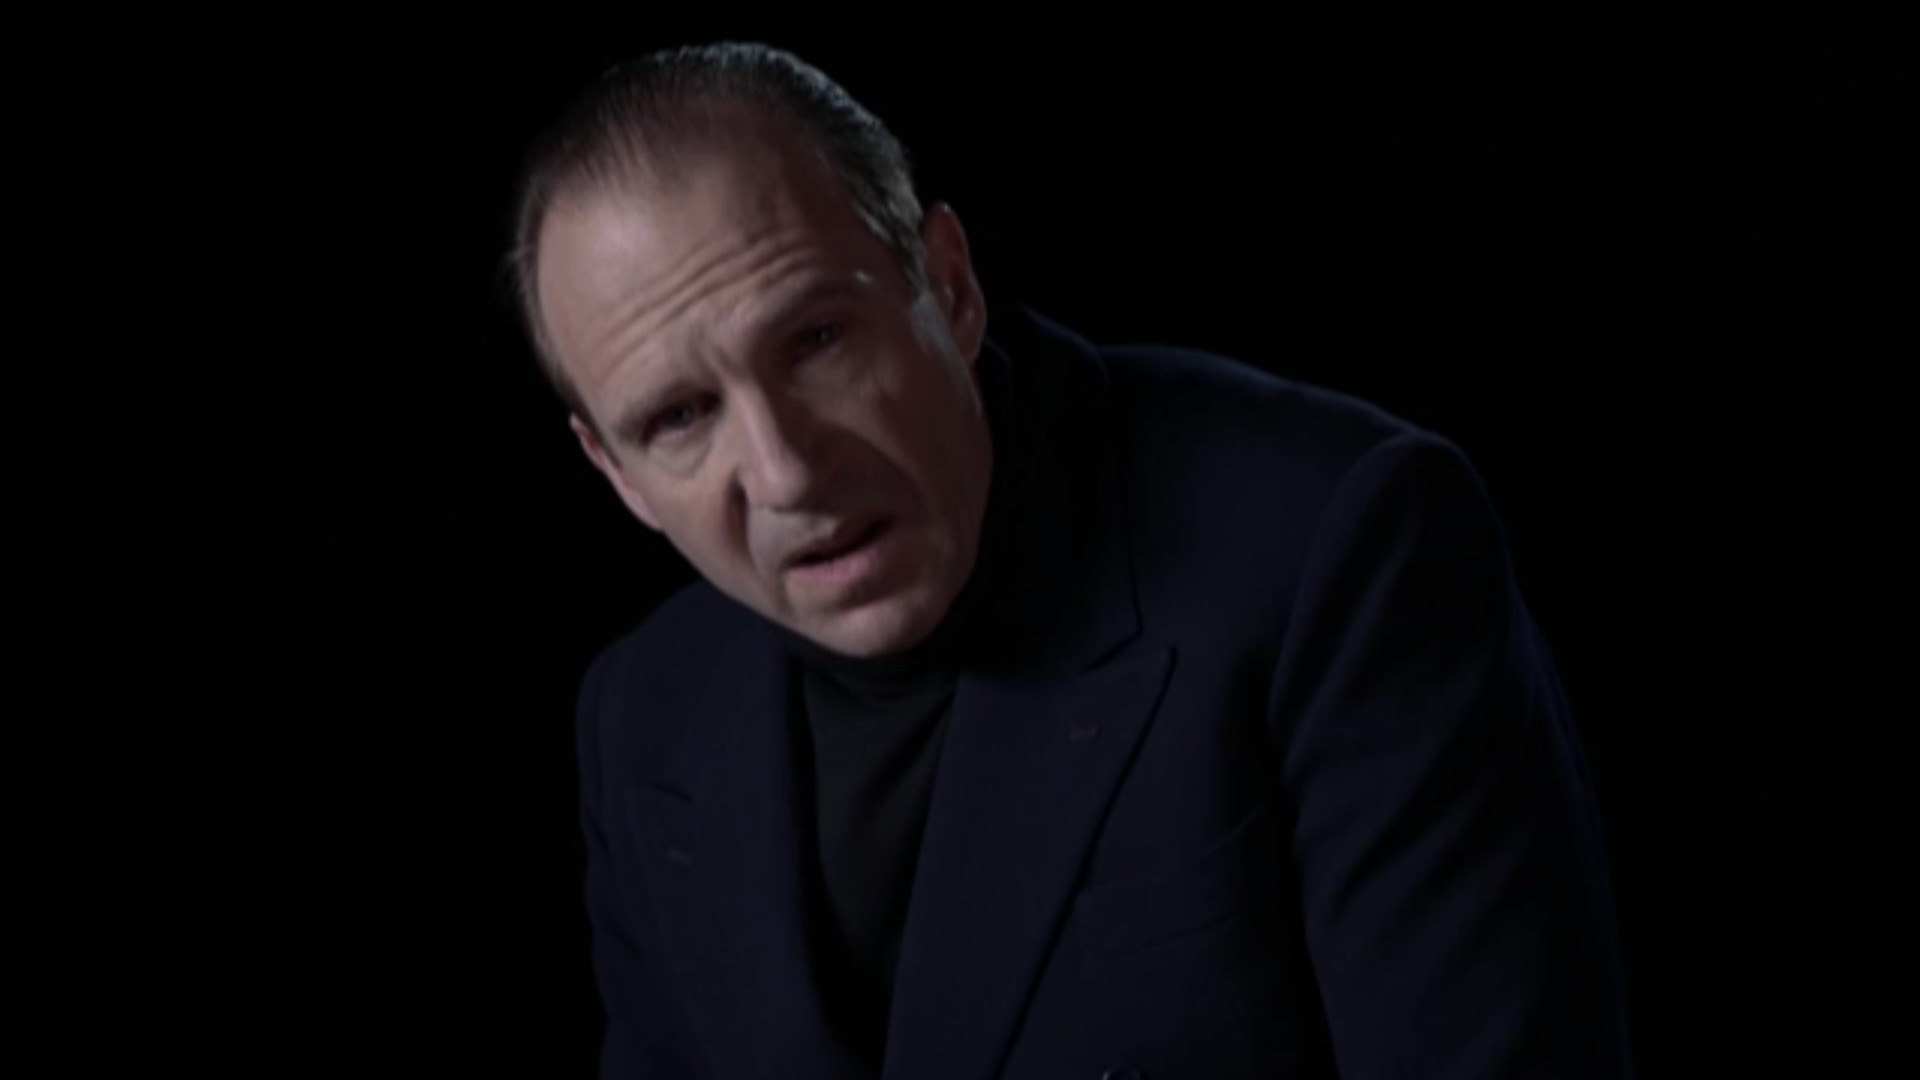 Ralph Fiennes Plays Richard III in New Shakespeare Short